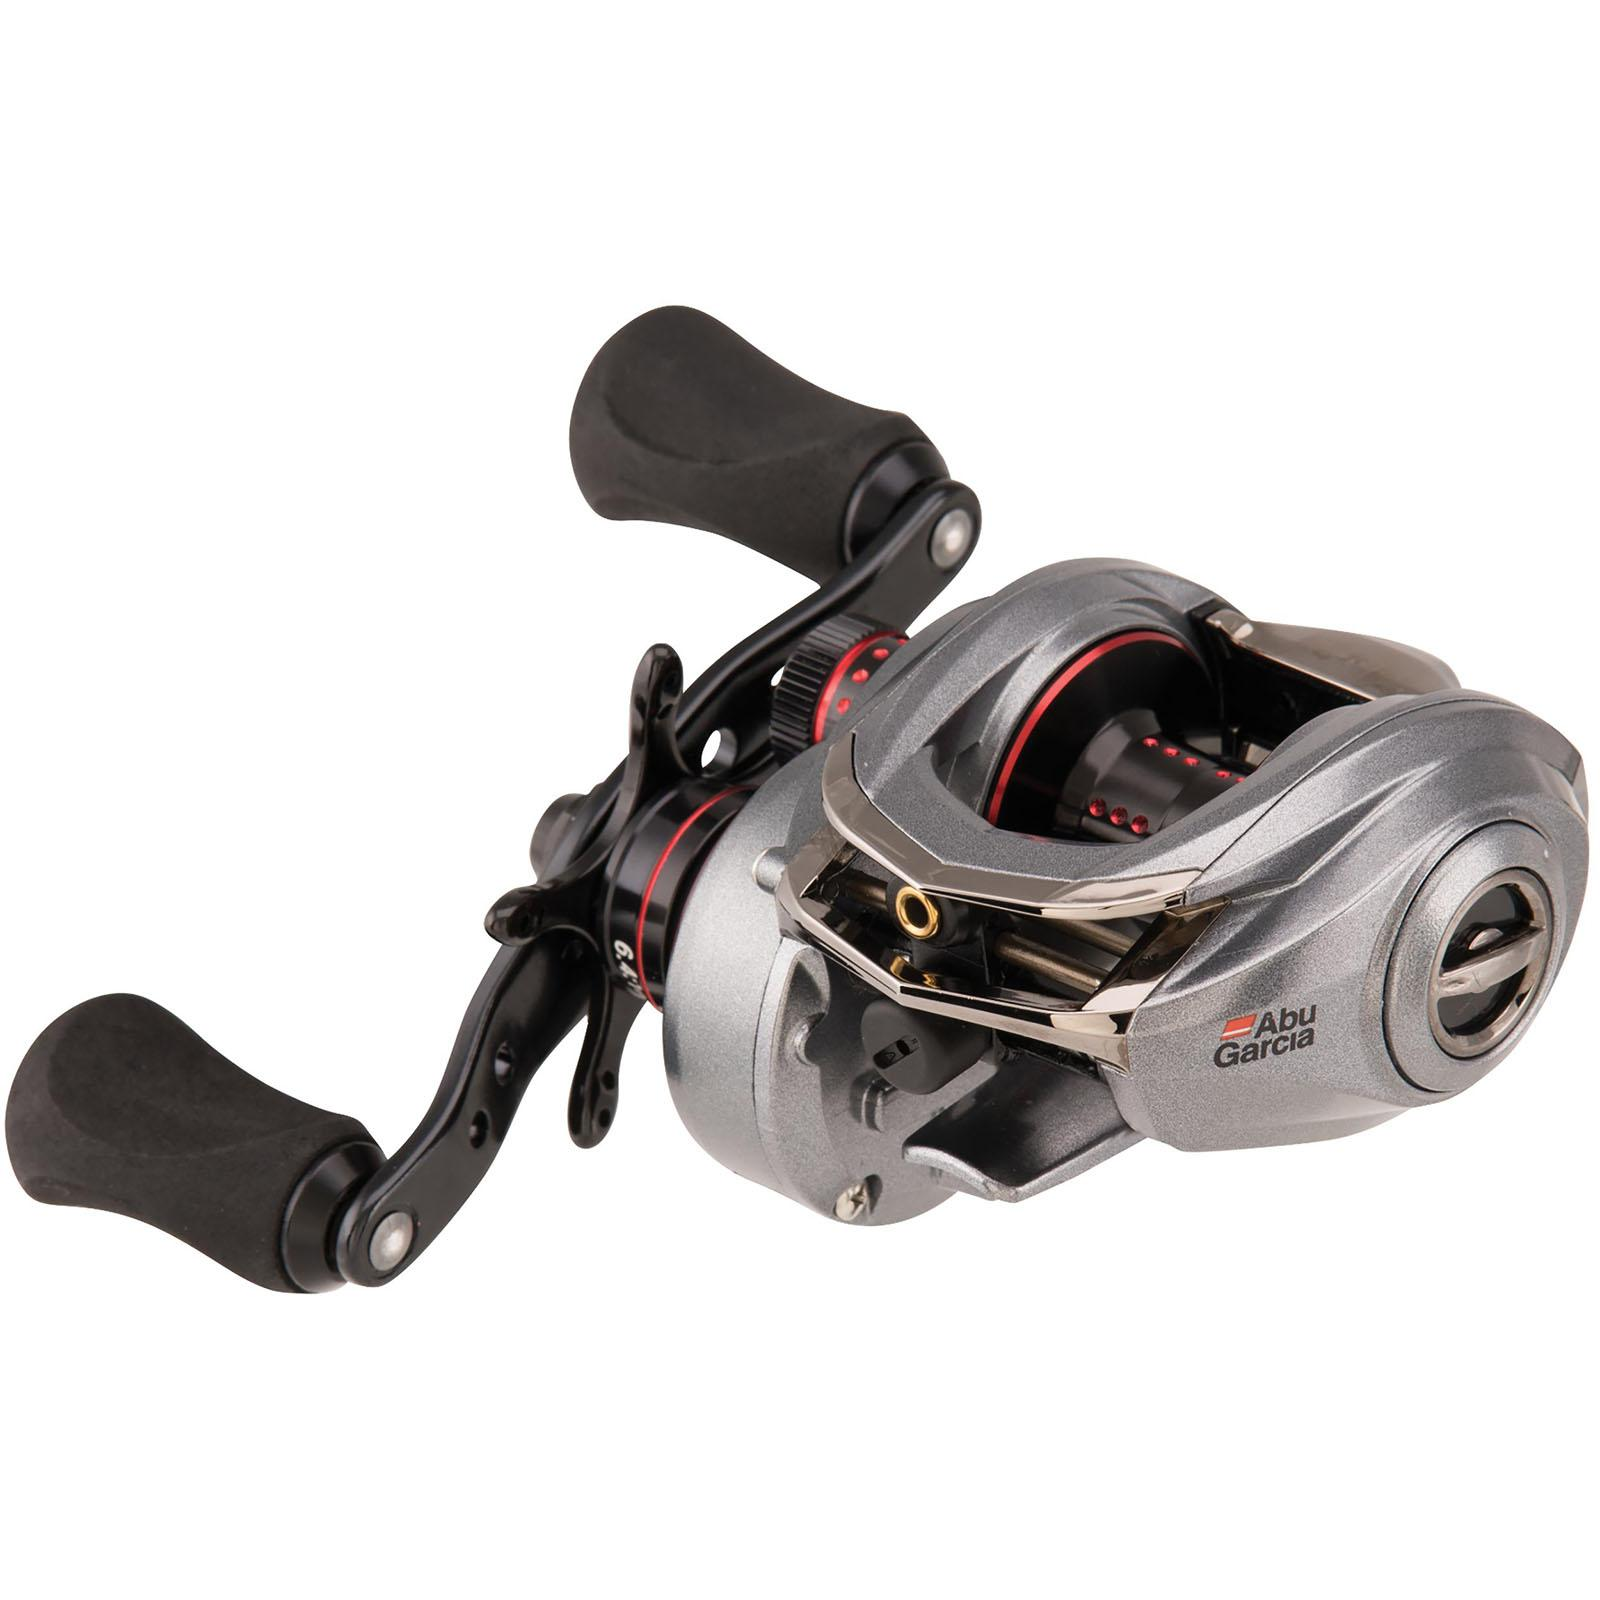 Abu Garcia Revo AL-F Low-Profile